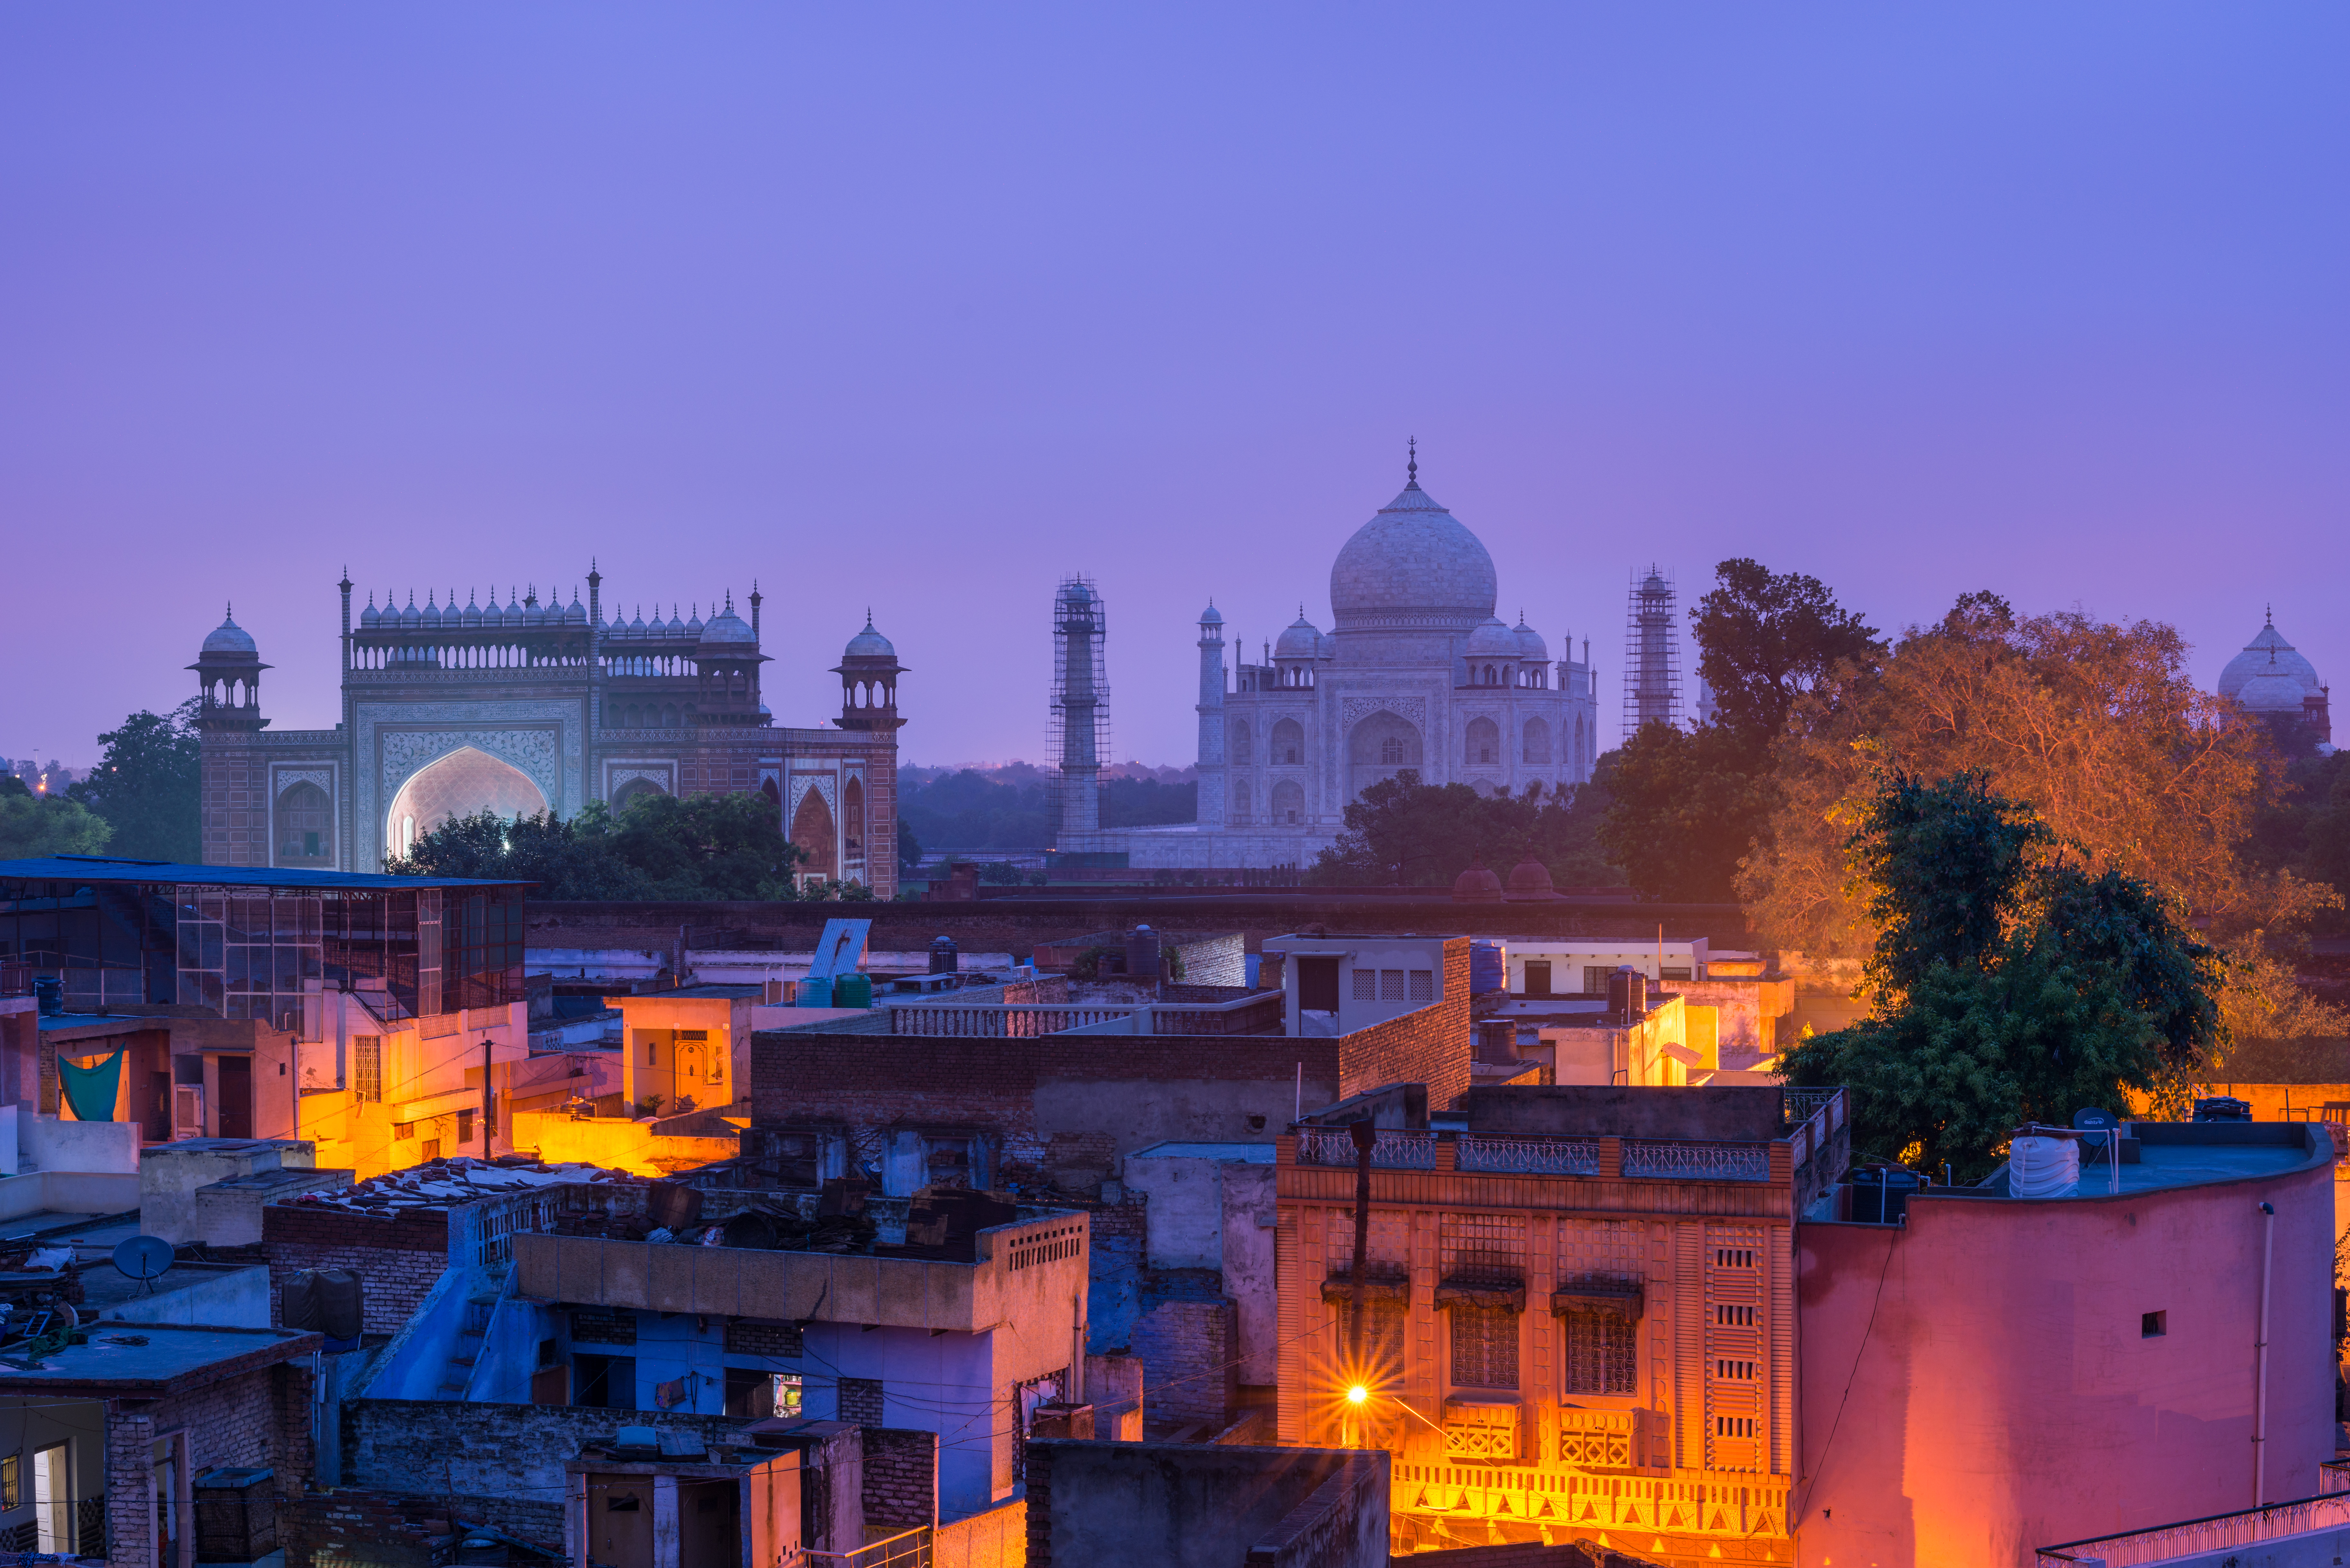 The morning light is ready to come to Agra town and the landmark TajMahal